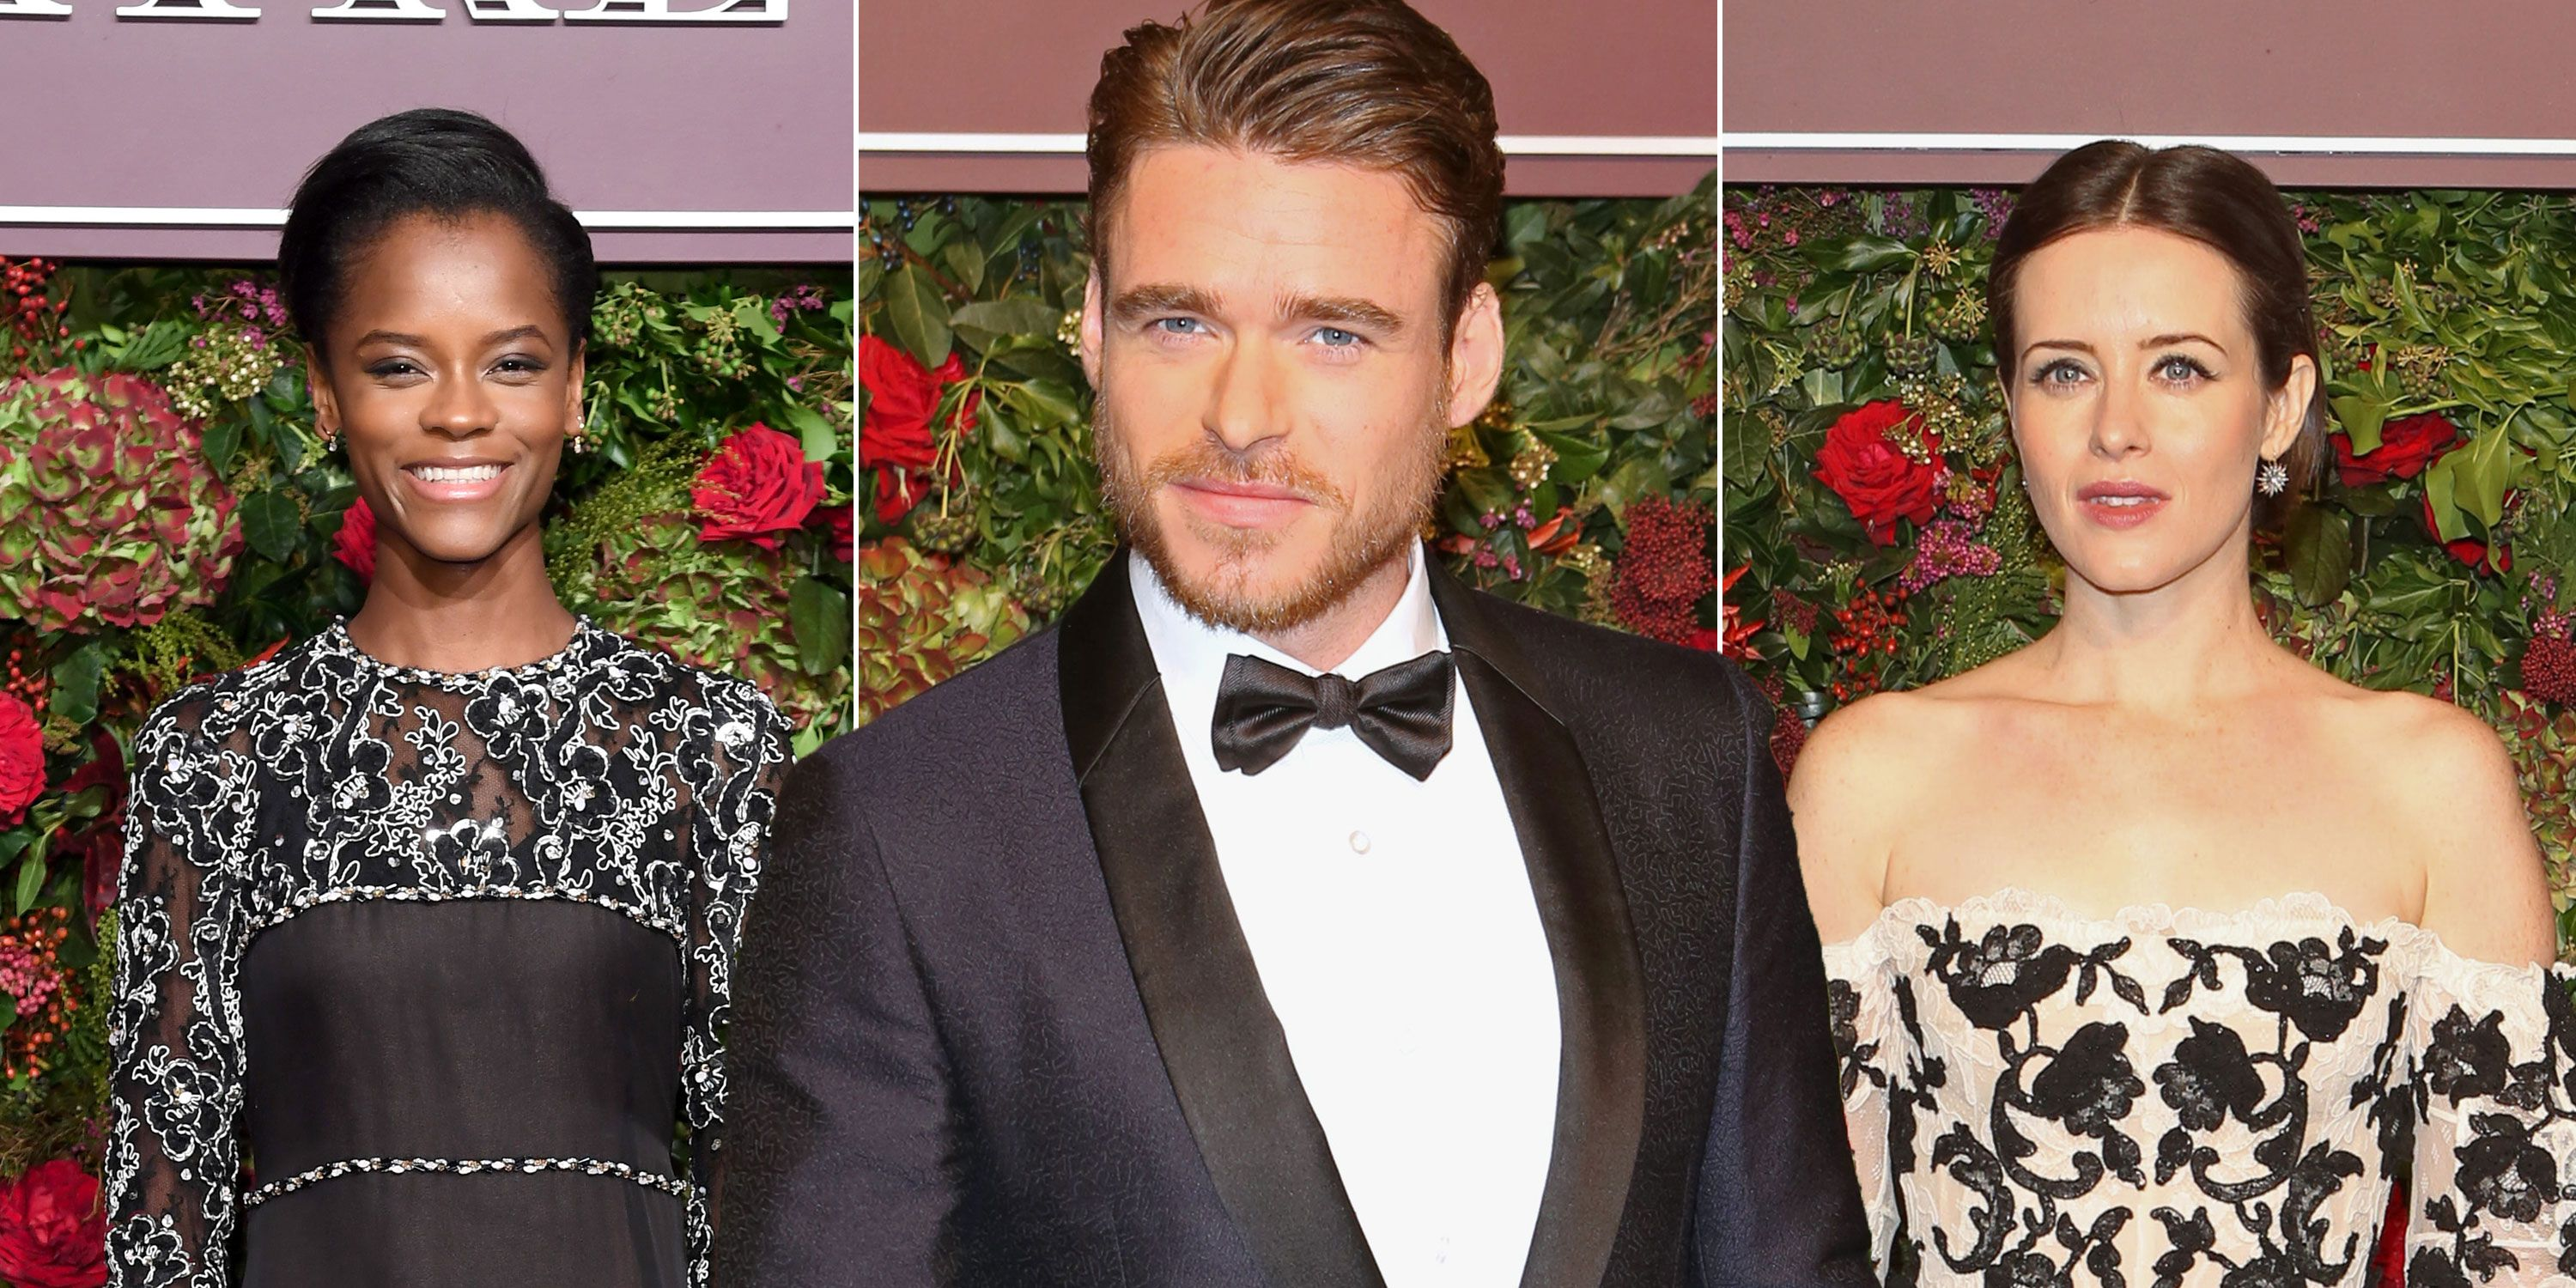 The Bodyguard's Richard Madden, Claire Foy, Letitia Wright and more stun on the red carpet